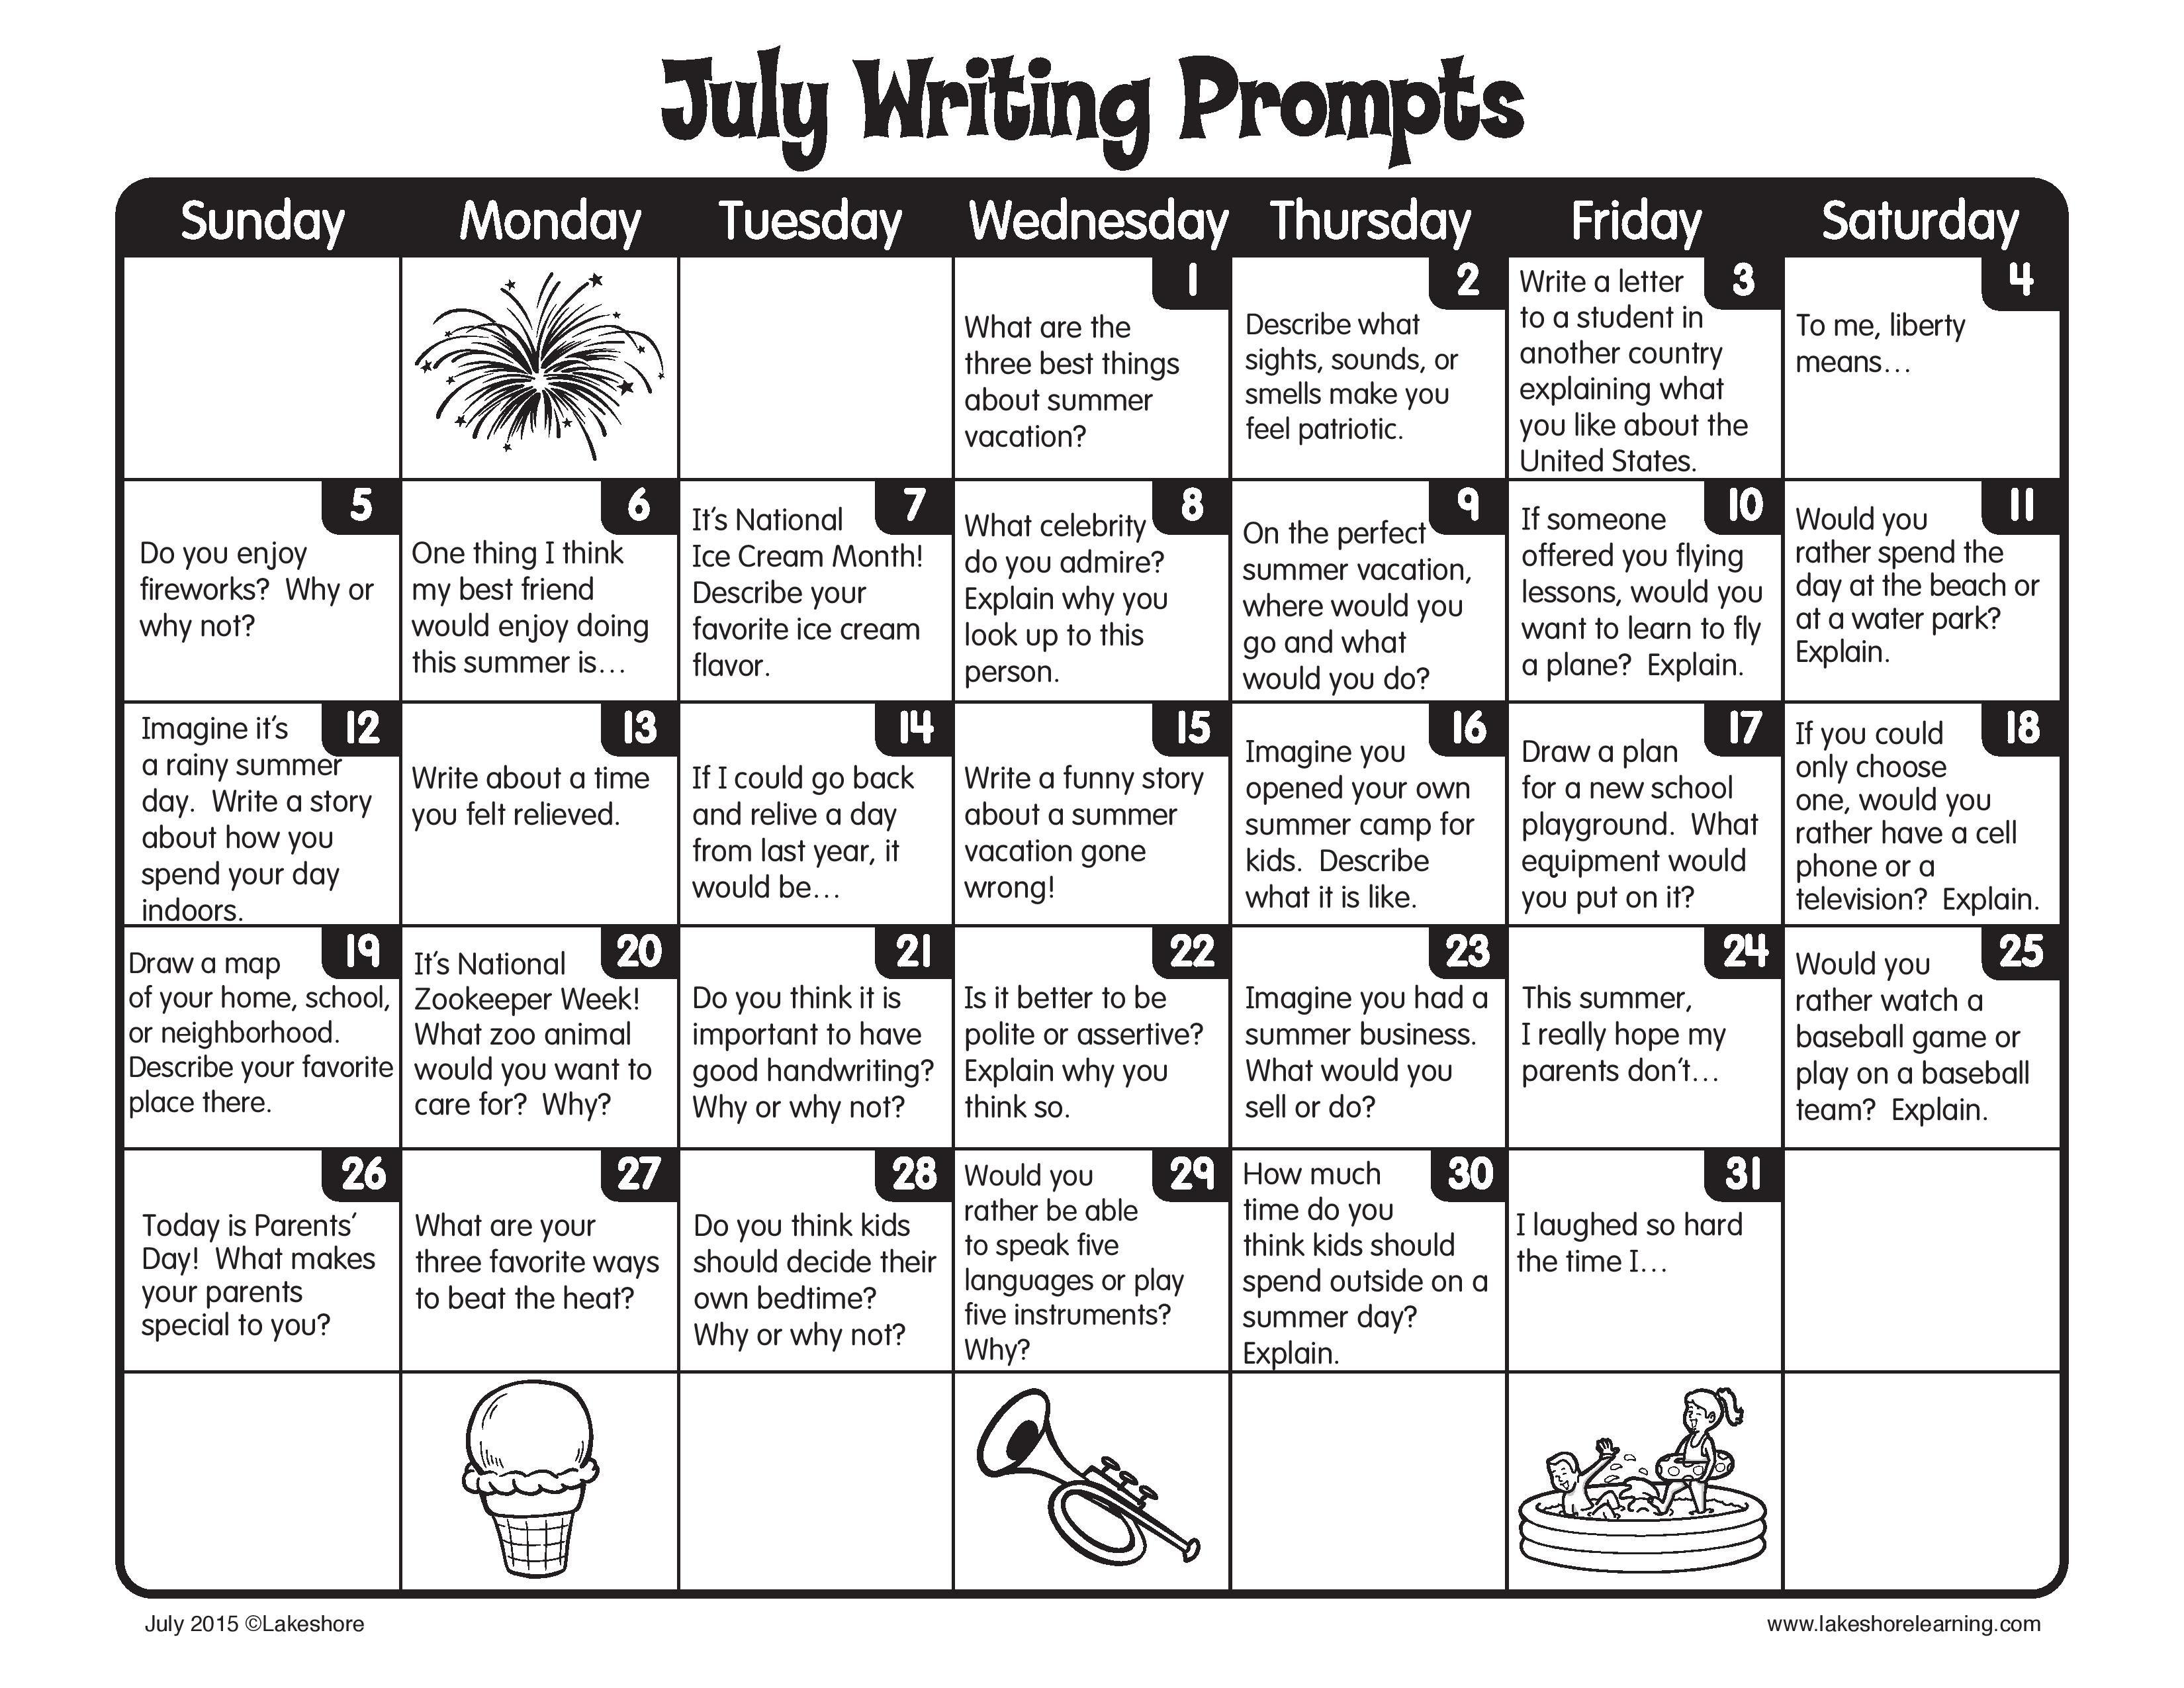 Keep Up The Daily Writing This Summer With Our July Writing Prompts